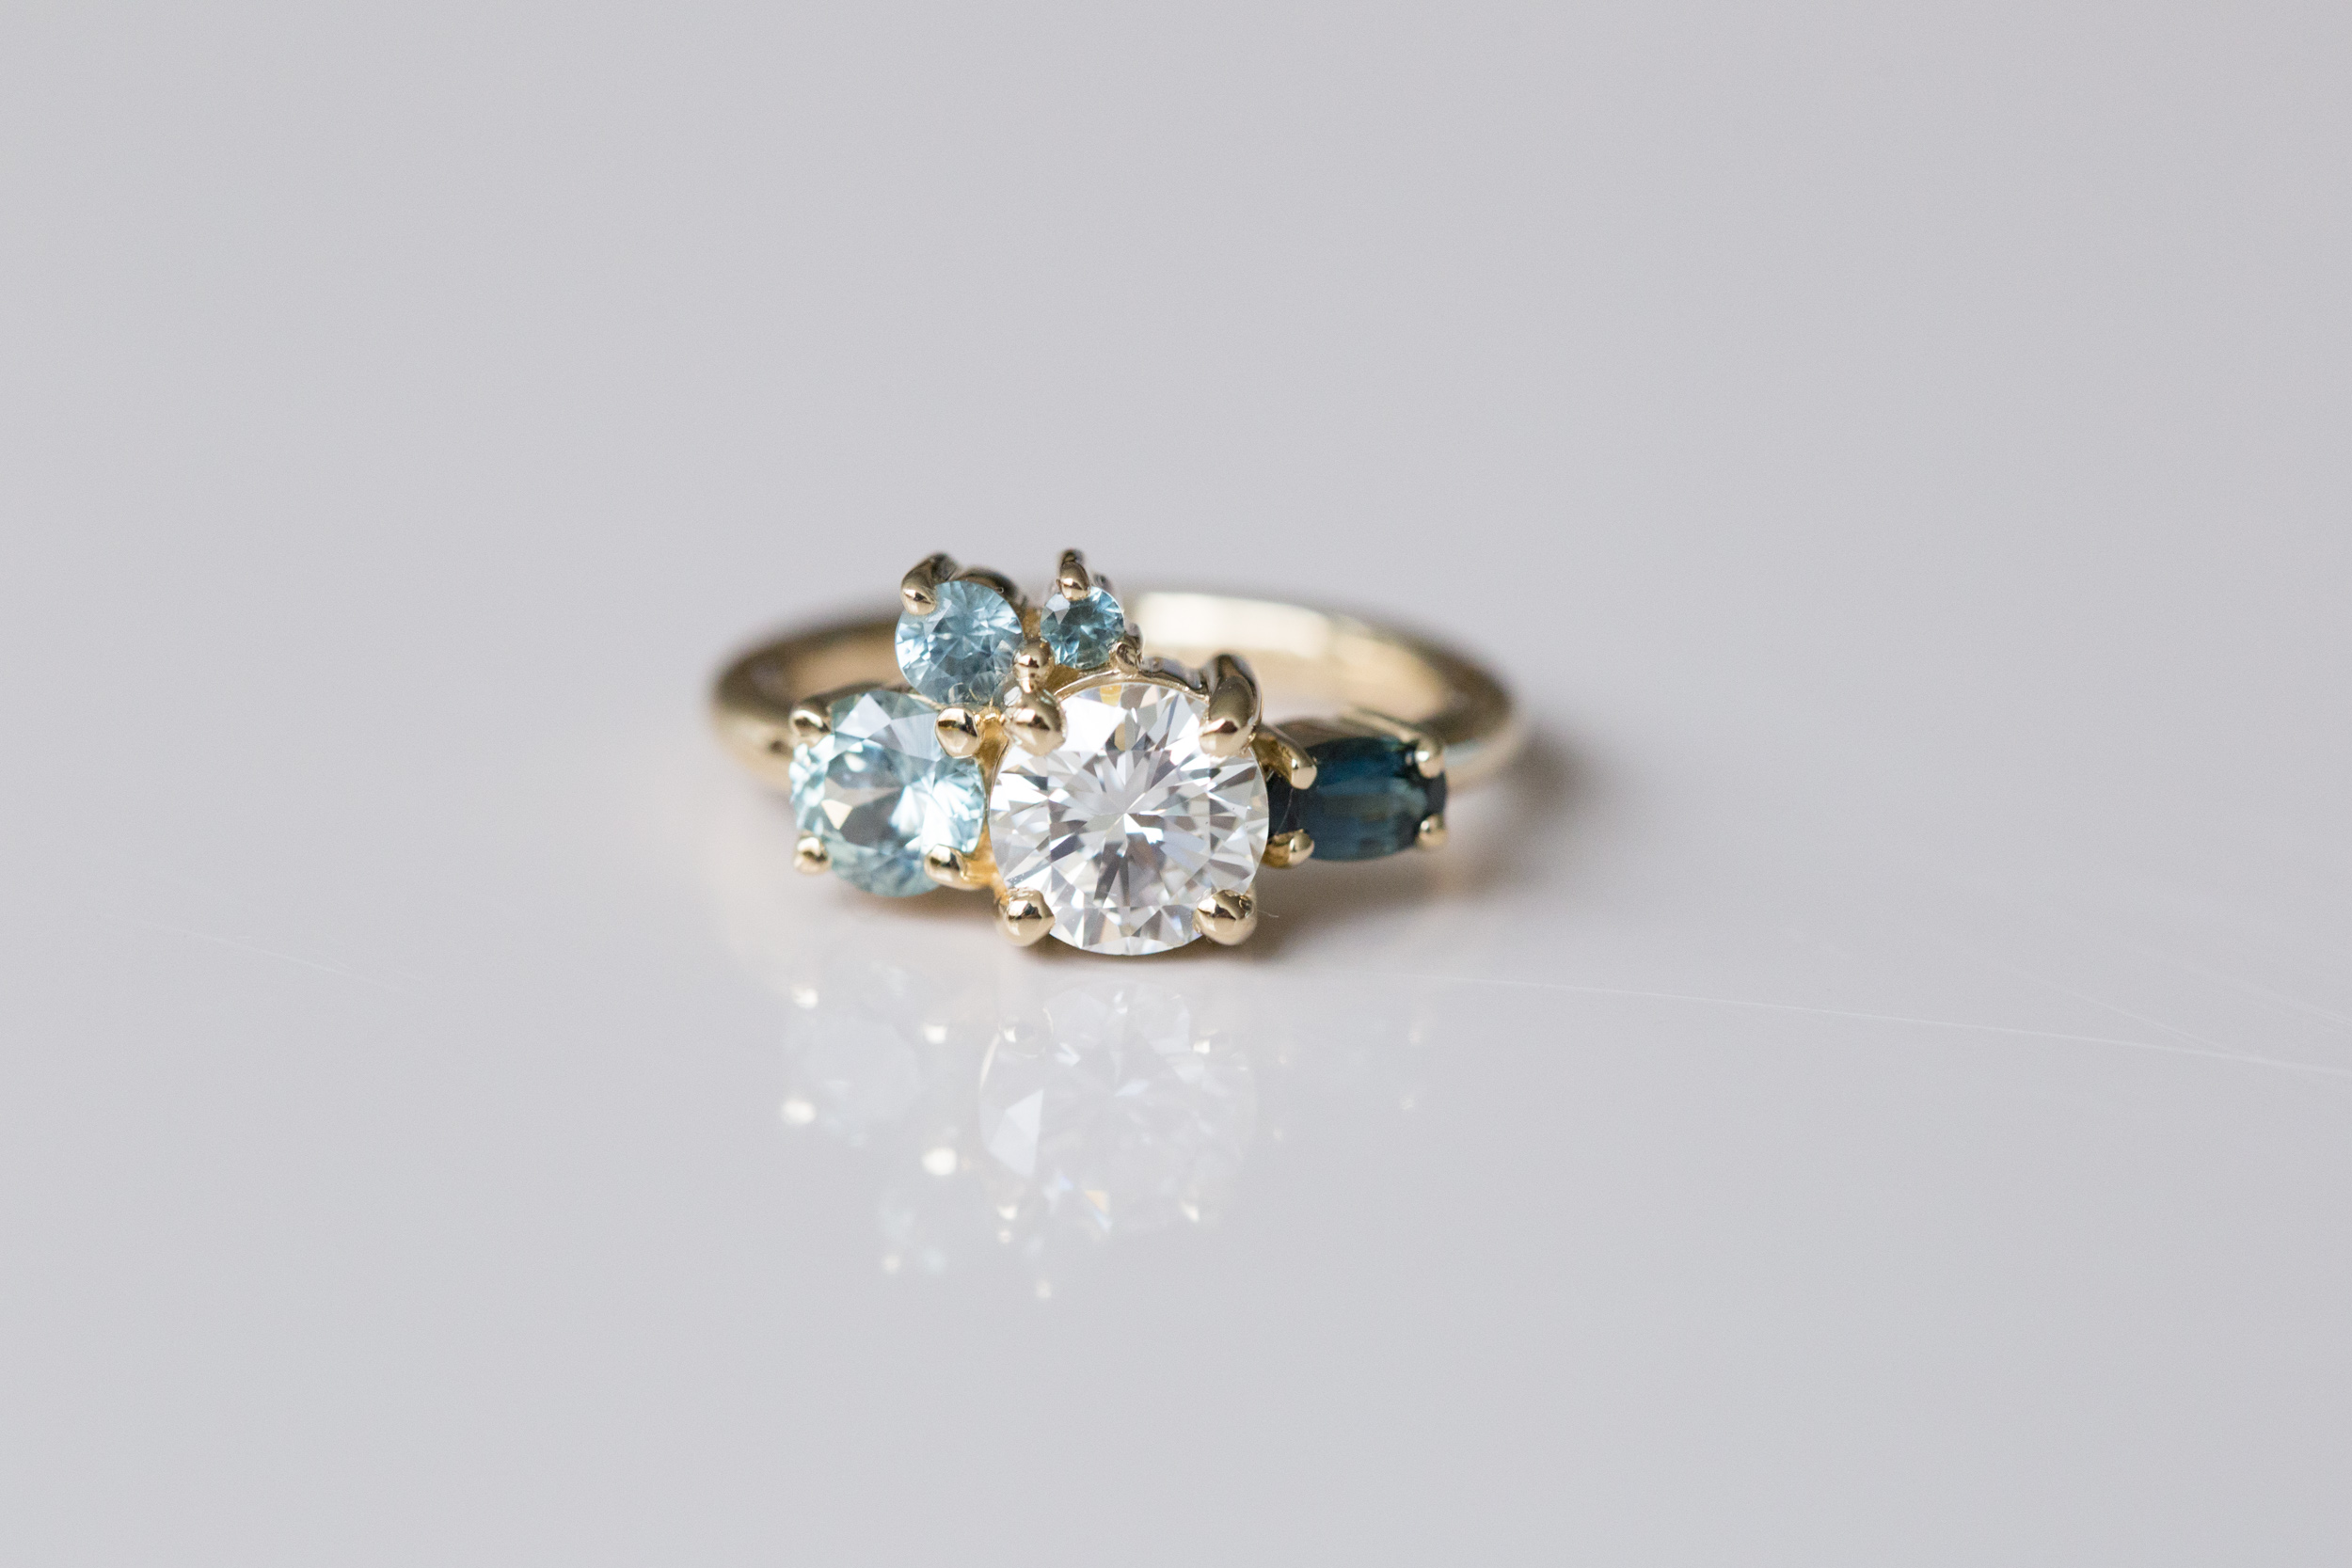 Eric + Molly Heirloom Diamond + Sapphire Ring-1.jpg